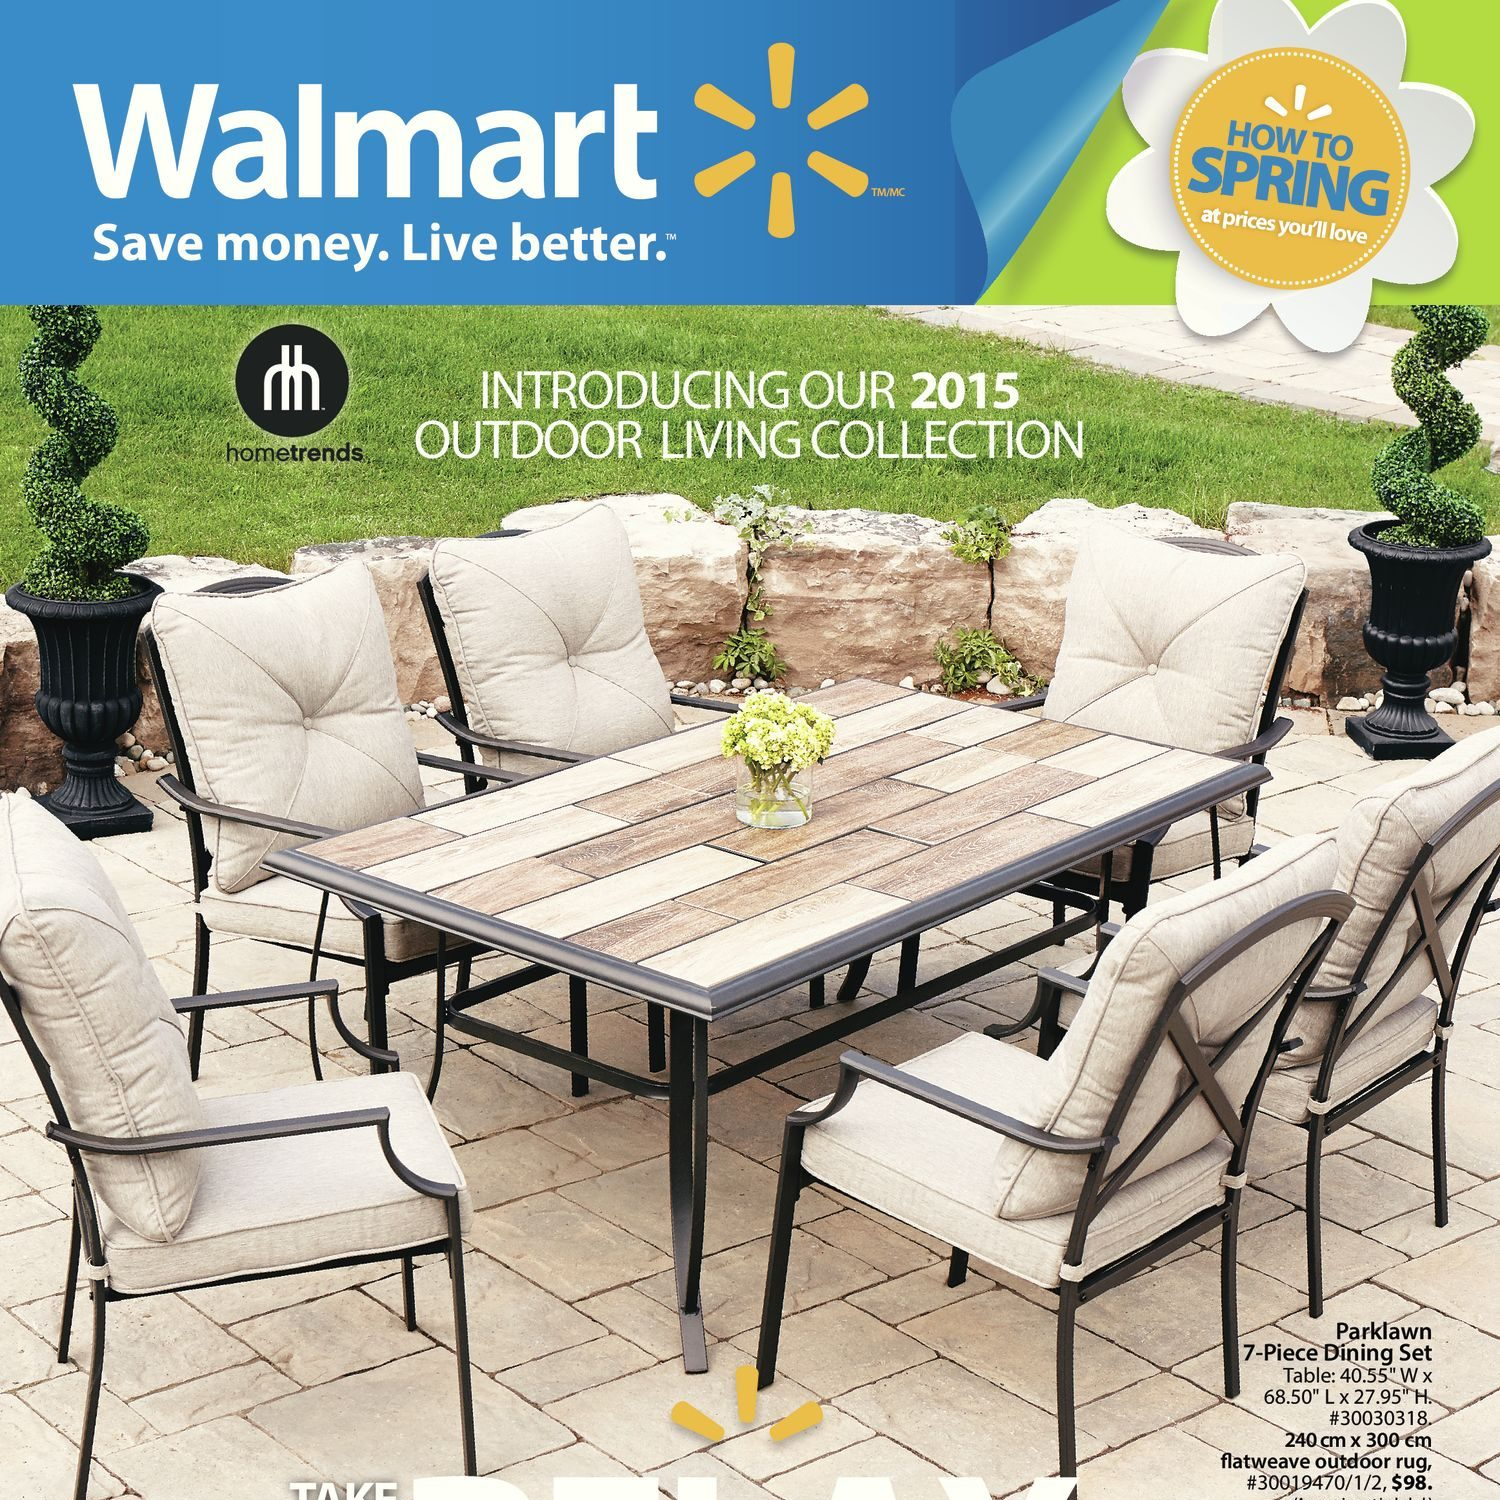 Walmart Weekly Flyer How to Spring 2015 Outdoor Living